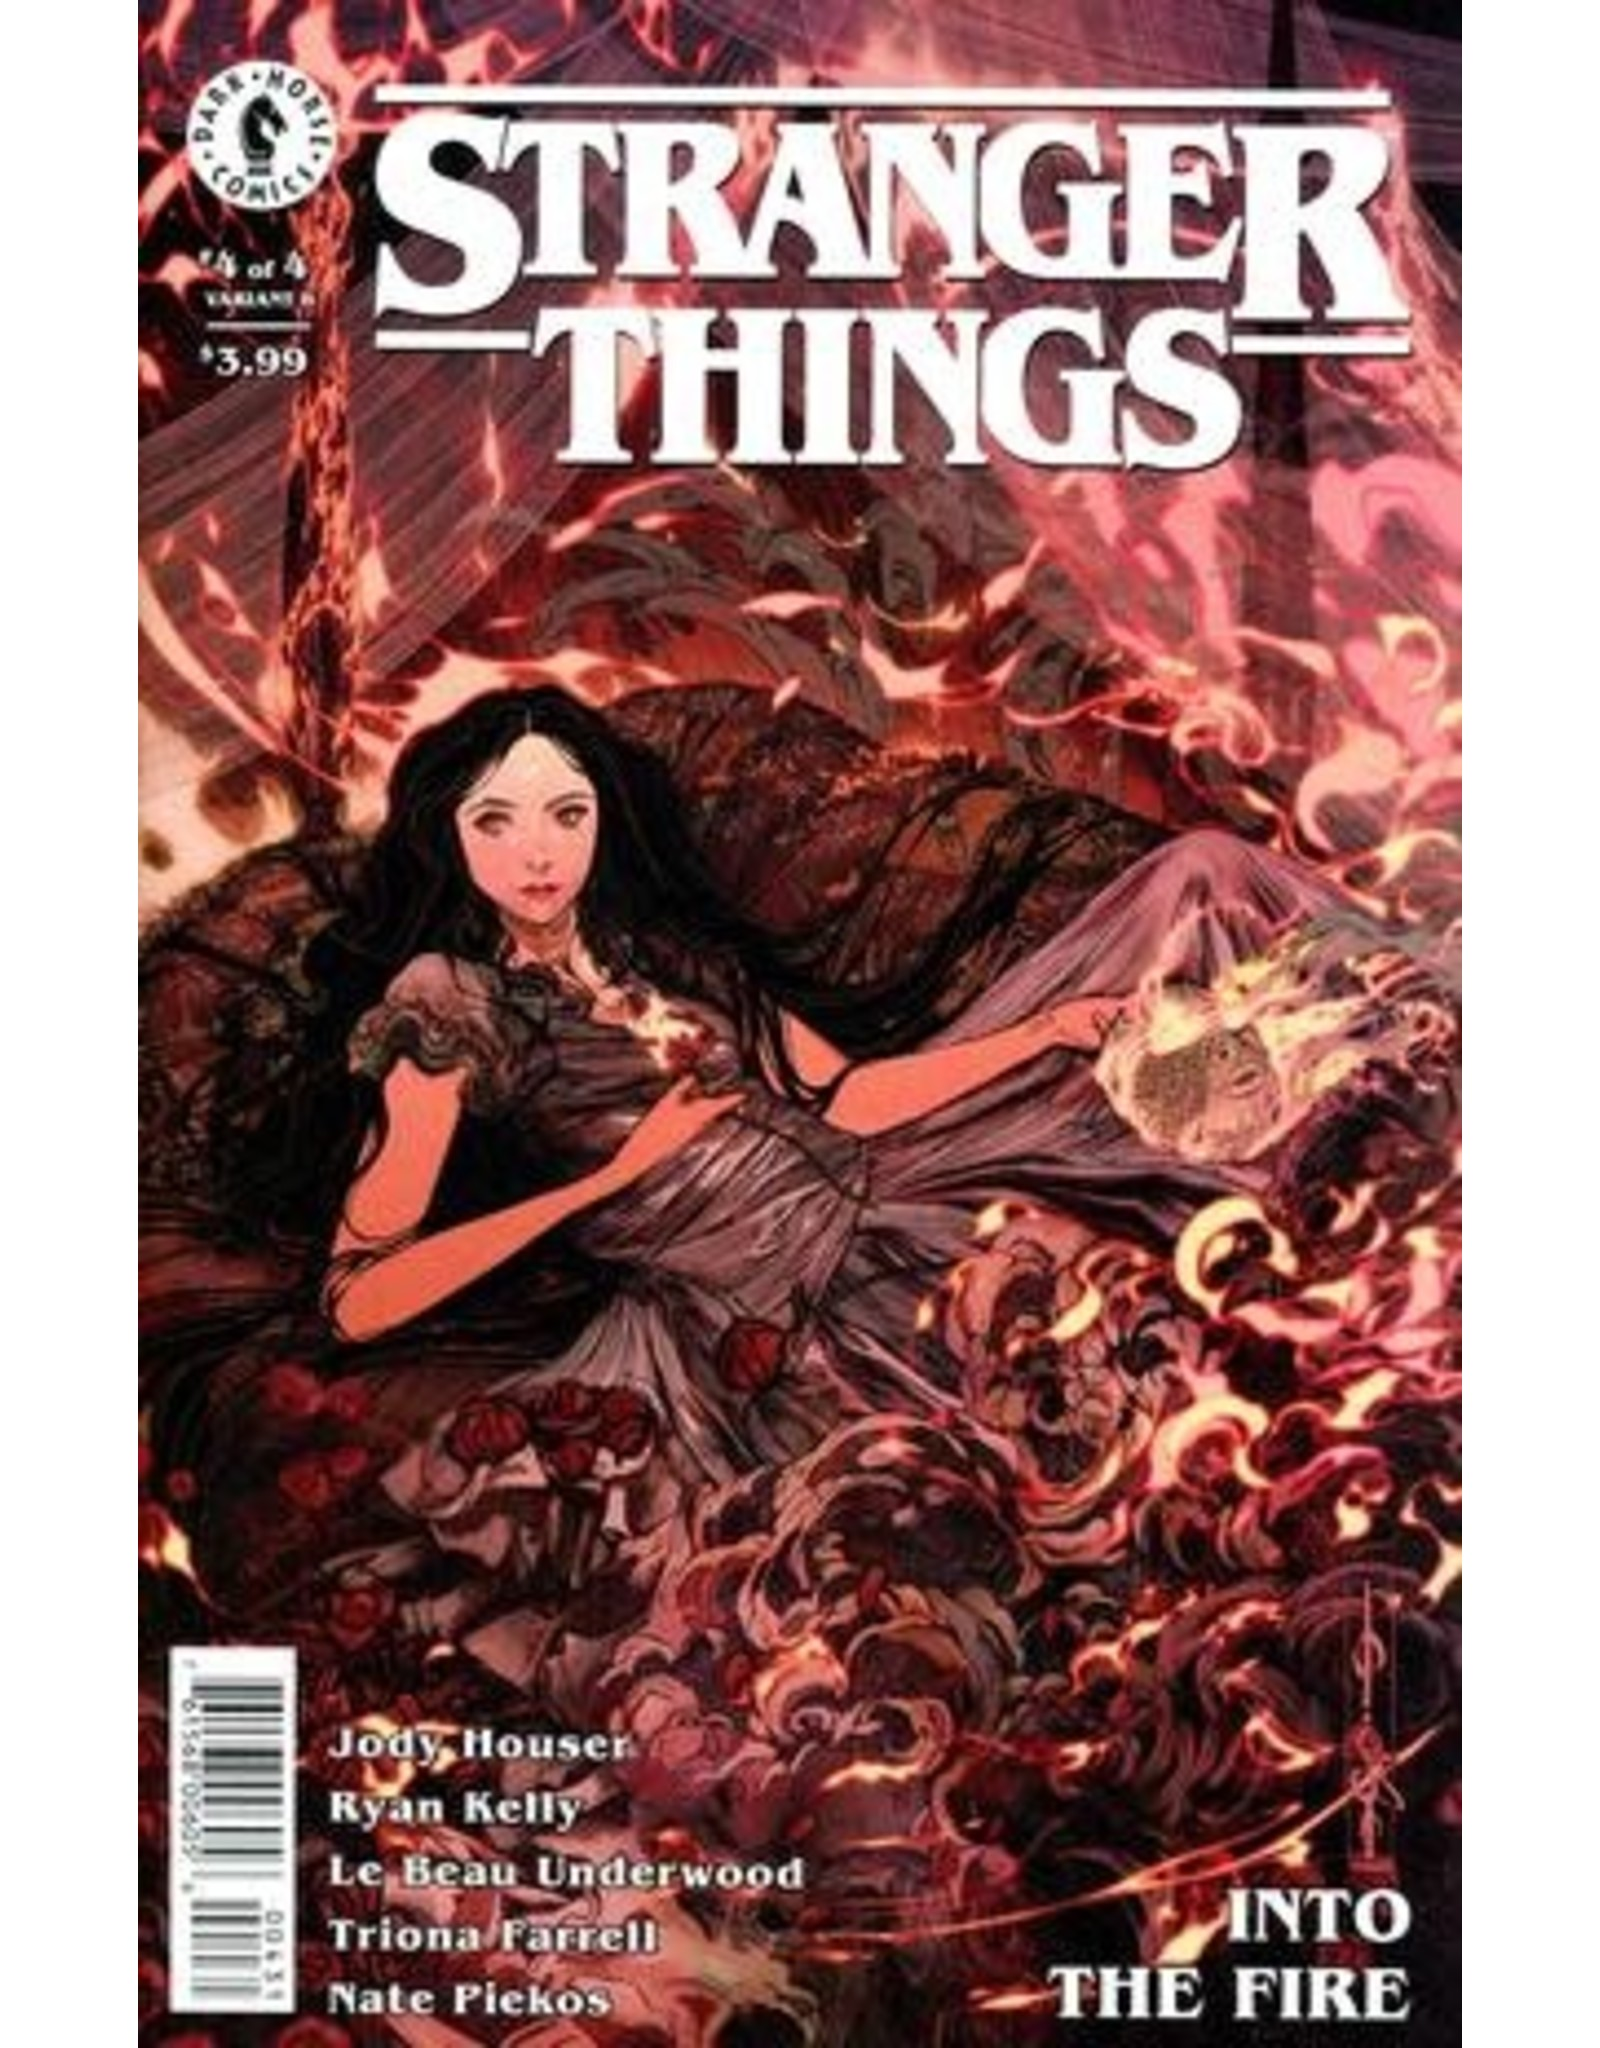 DARK HORSE COMICS STRANGER THINGS INTO THE FIRE #4 (OF 4) CVR C CAGLE